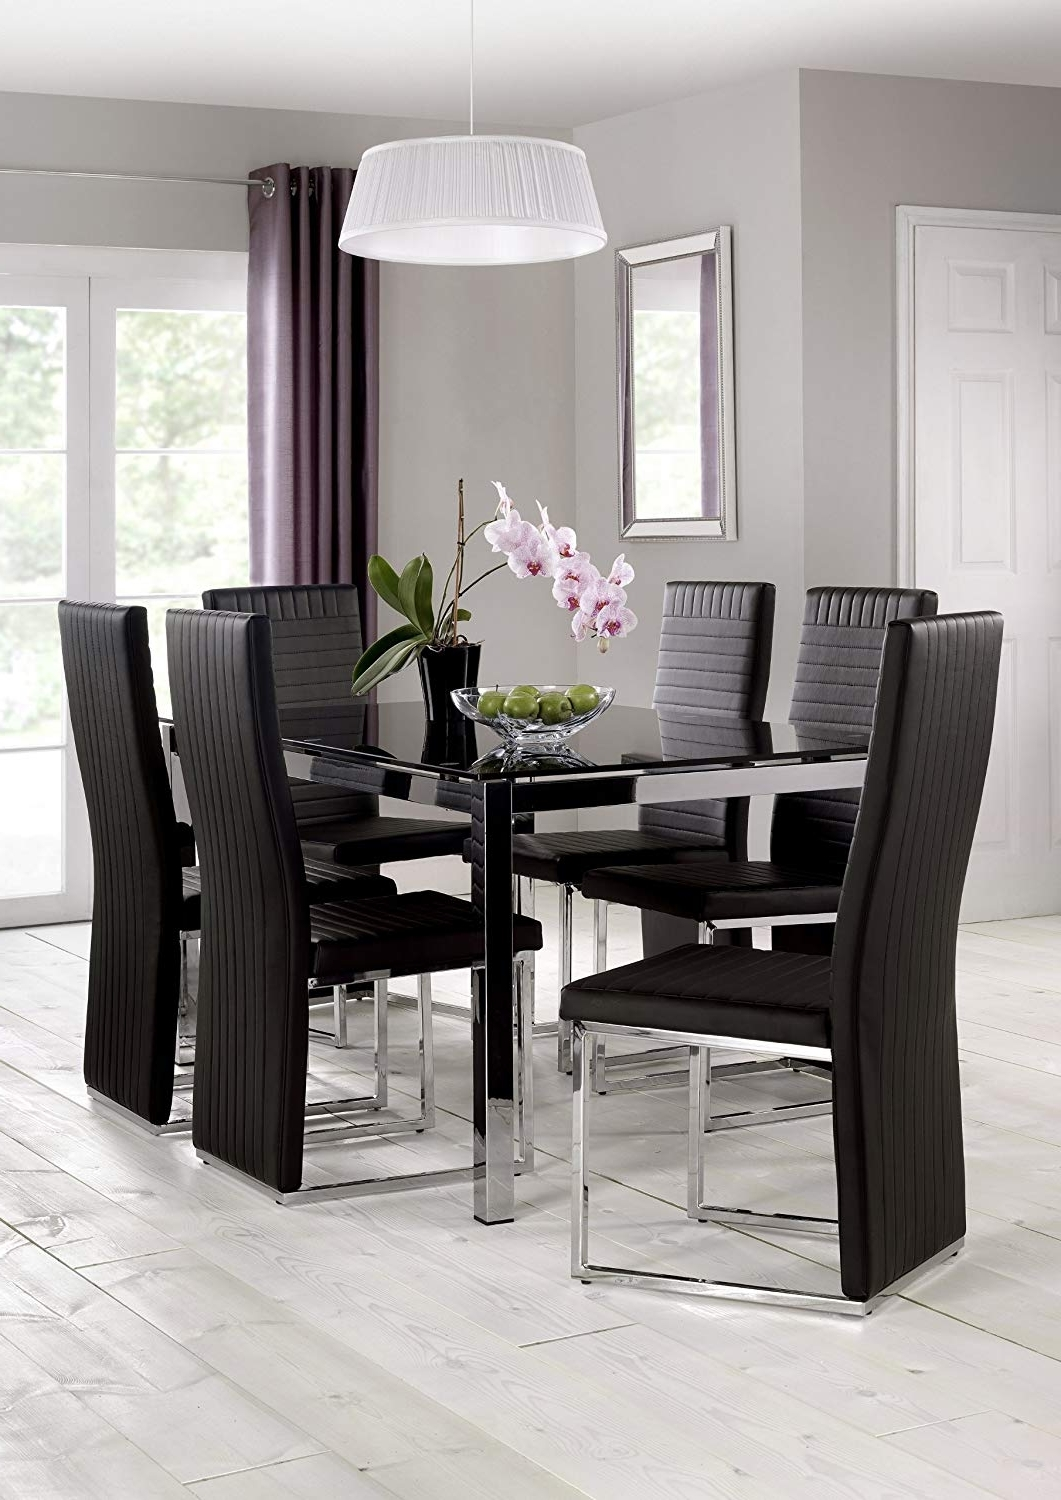 Dining Tables With 6 Chairs pertaining to Most Up-to-Date Julian Bowen Tempo Glass Dining Table, Chrome/black: Amazon.co.uk